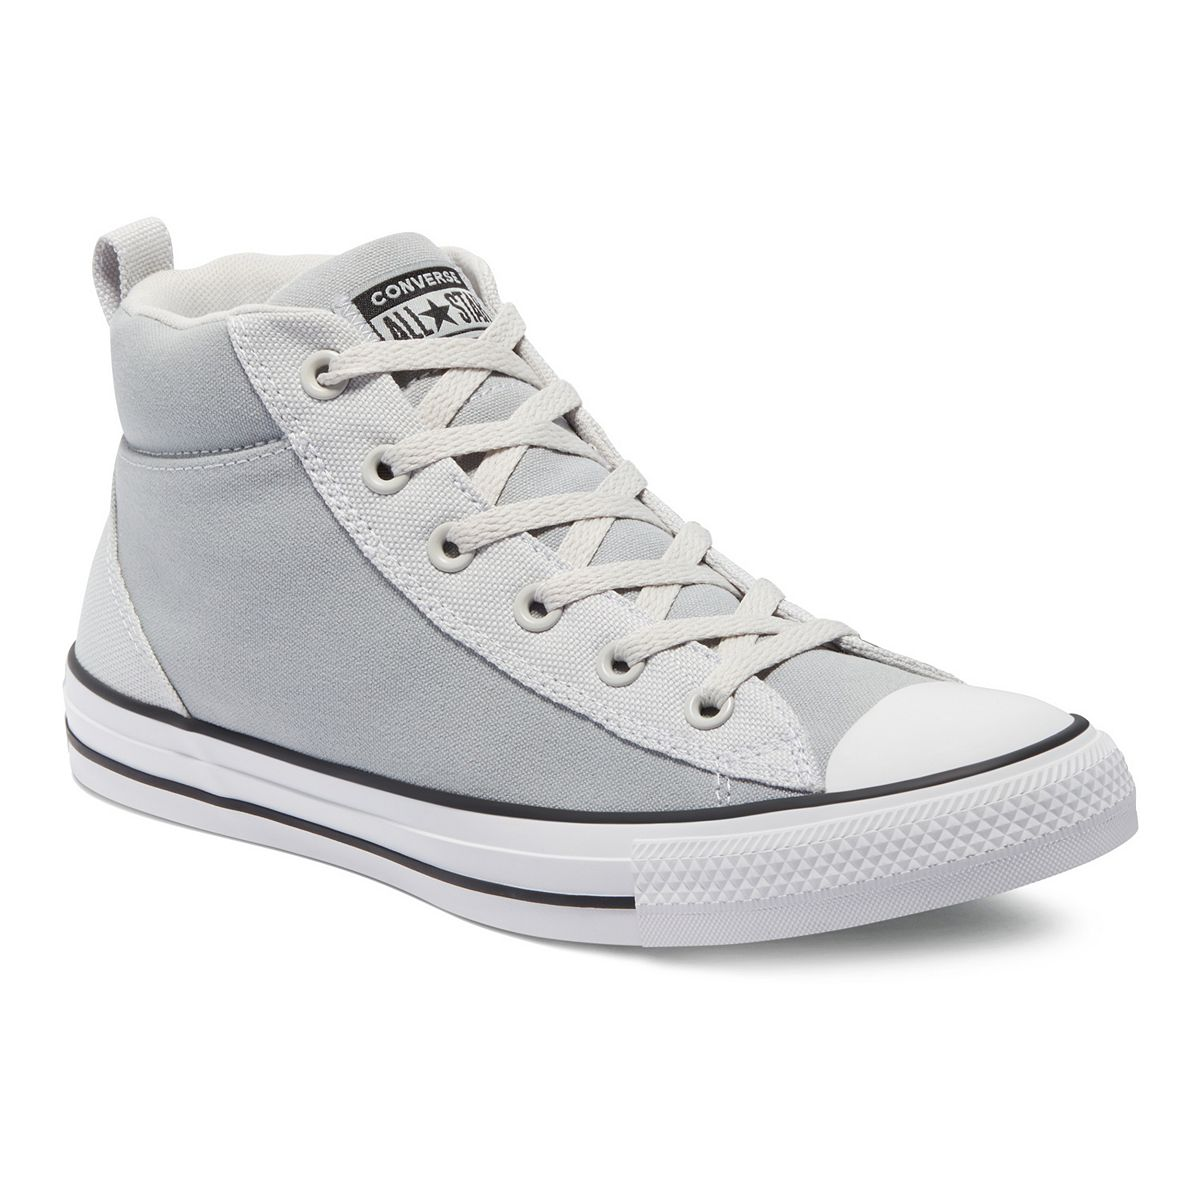 Men's: Converse Chuck Taylor All Star Street Mid-Top Sneakers! .00 (REG .00) at Kohl's!